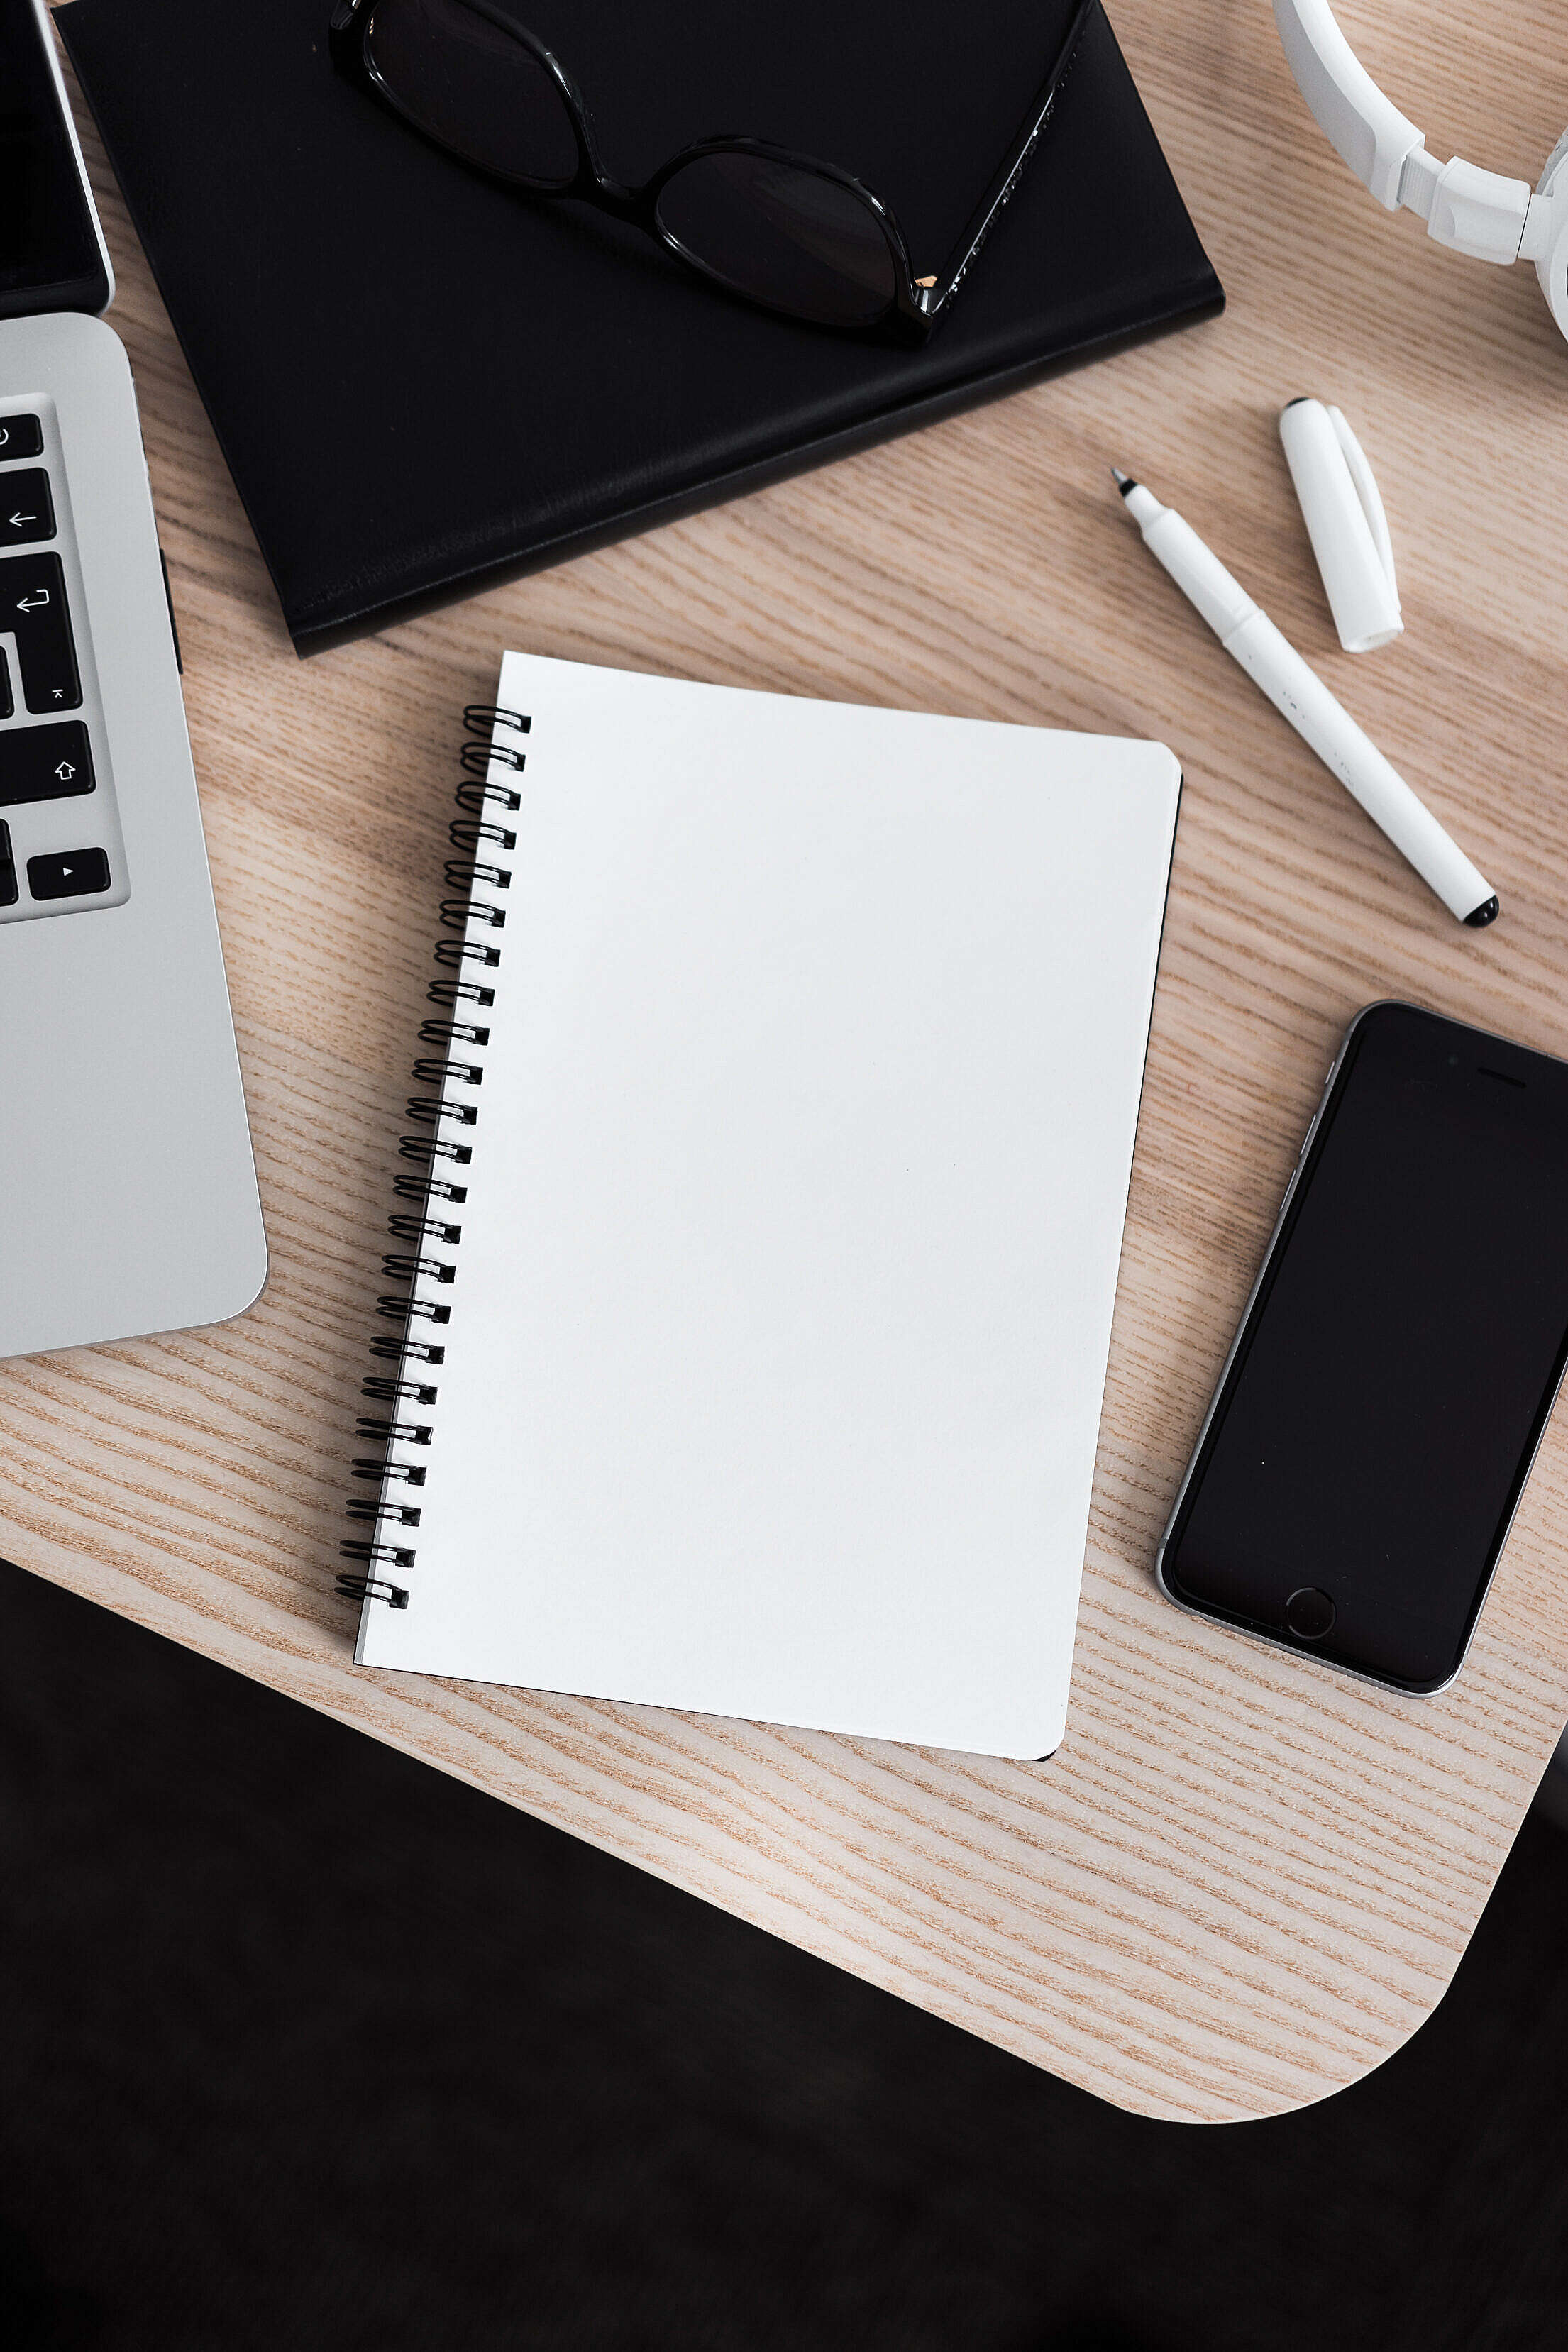 Blank Notebook in an Office Space Free Stock Photo